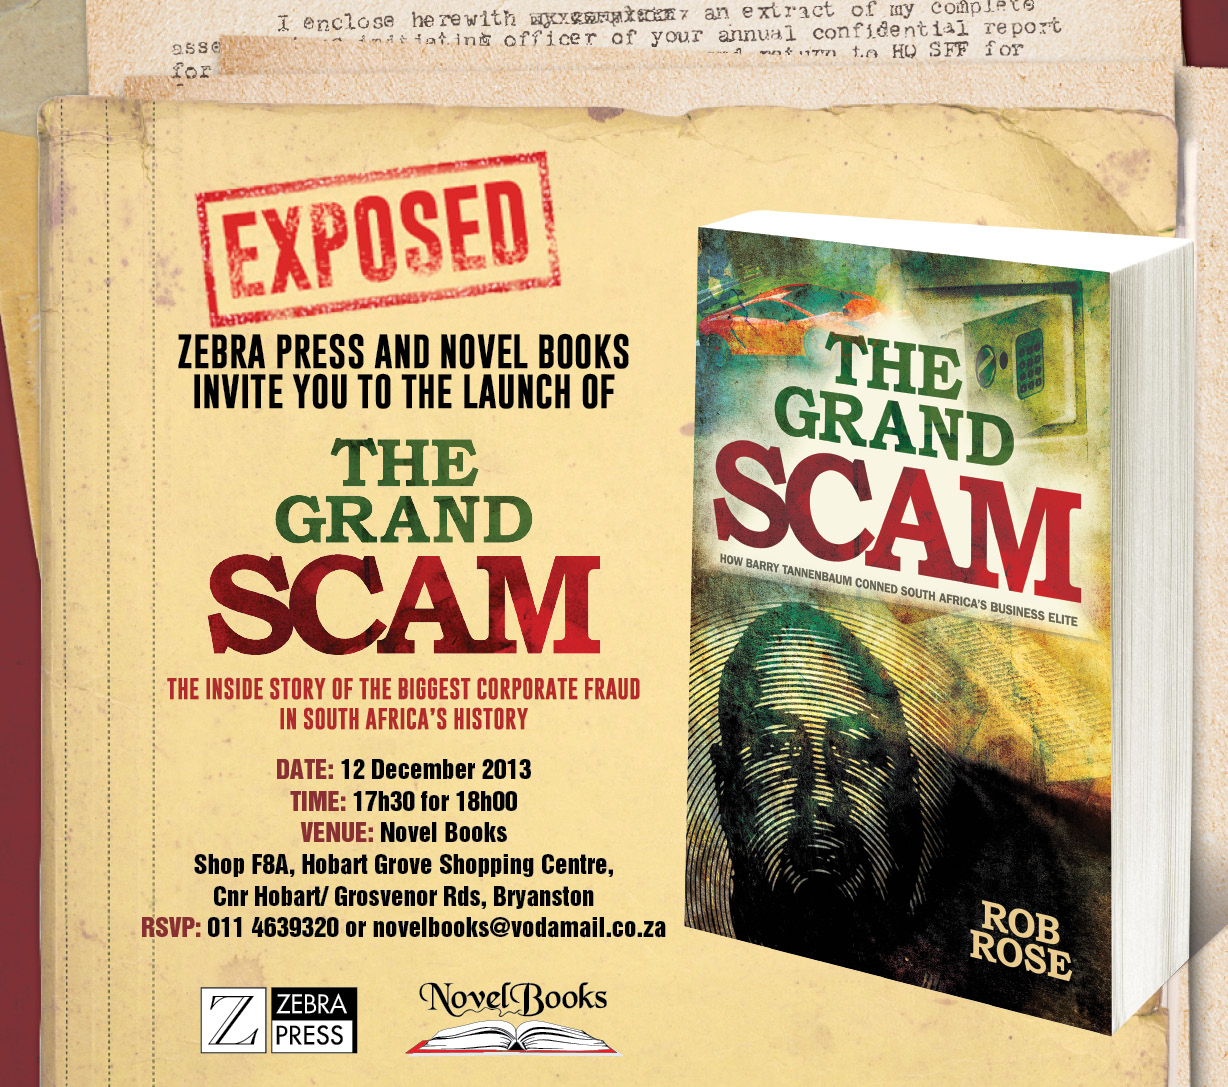 The Grand Scam - Book Launch at Novel Books